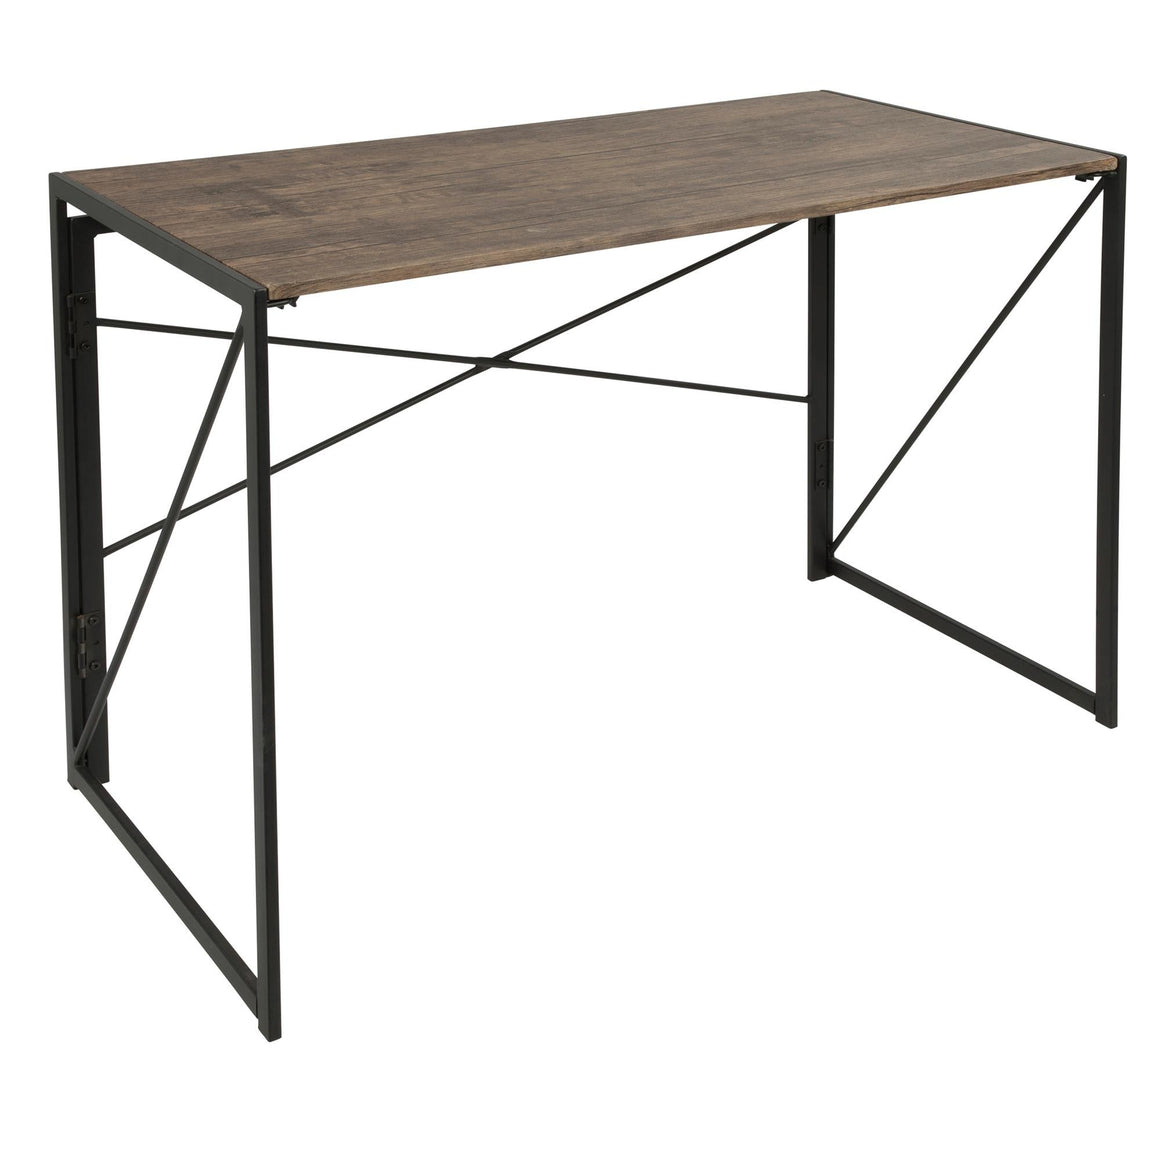 Dakota Industrial Office Desk in Black with Wood Top by LumiSource